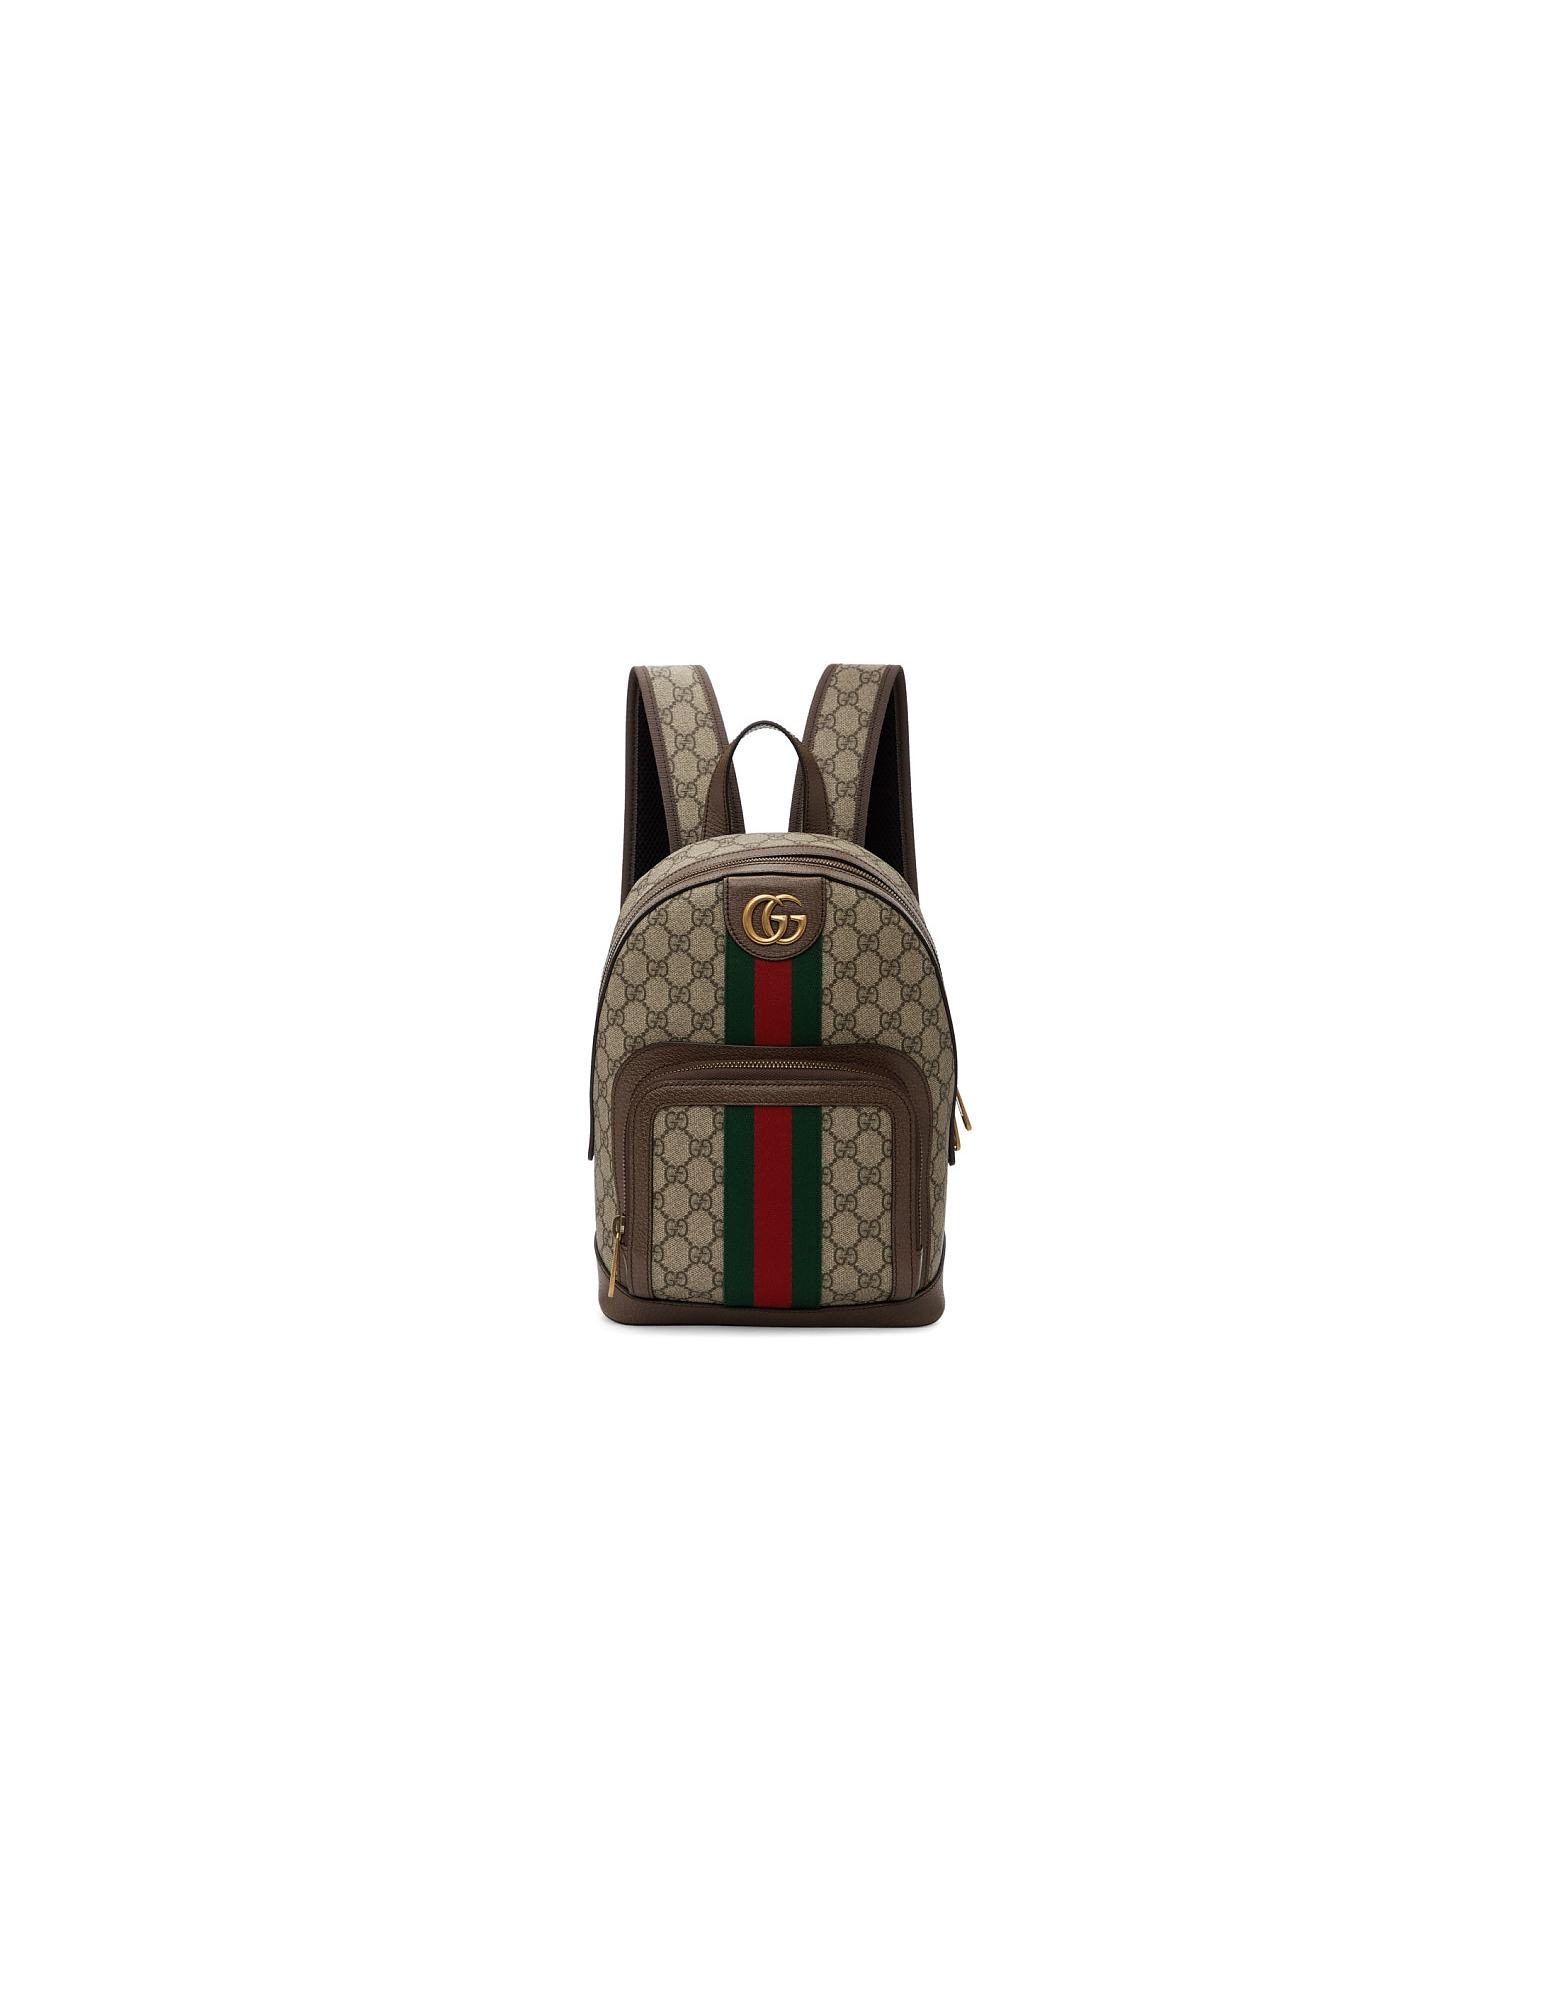 Gucci Designer Handbags, Beige Small GG Ophidia Backpack